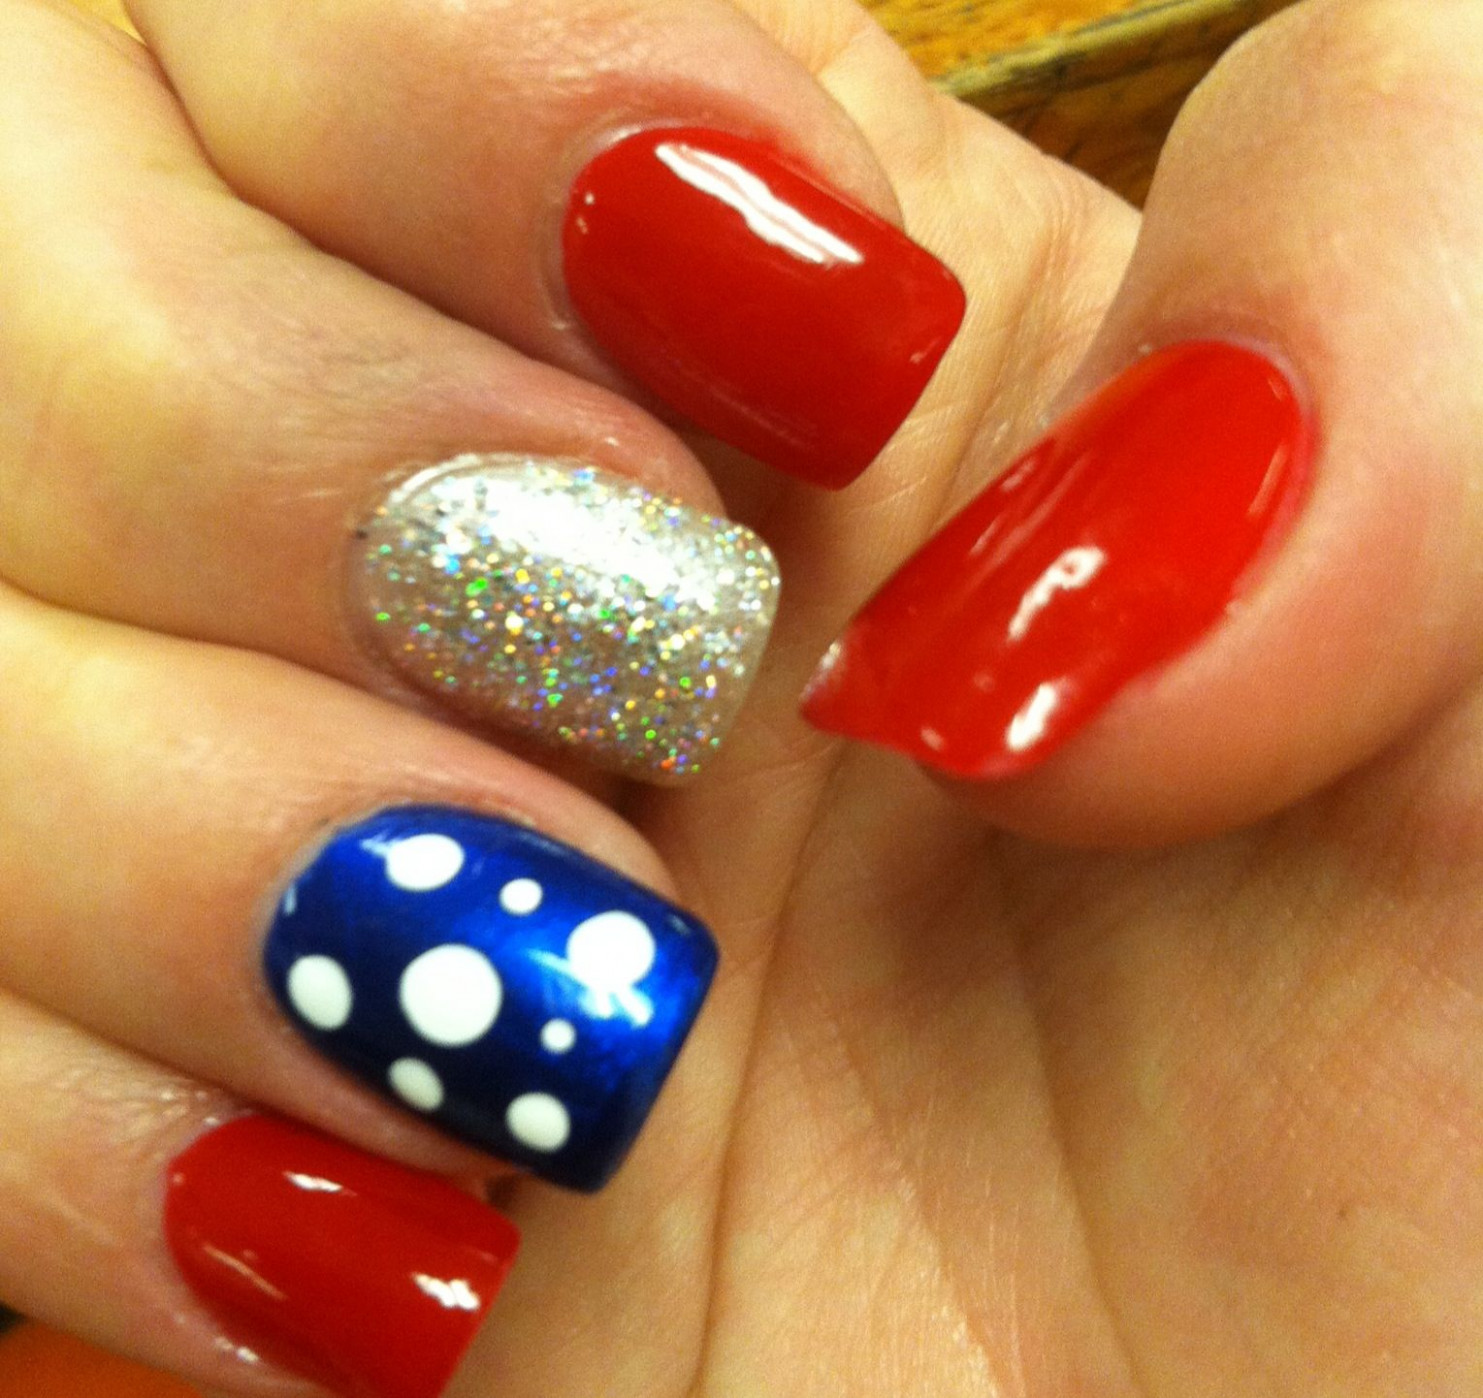 Pin by Heather Chapman on nails!  Blue gel nails, Red nail